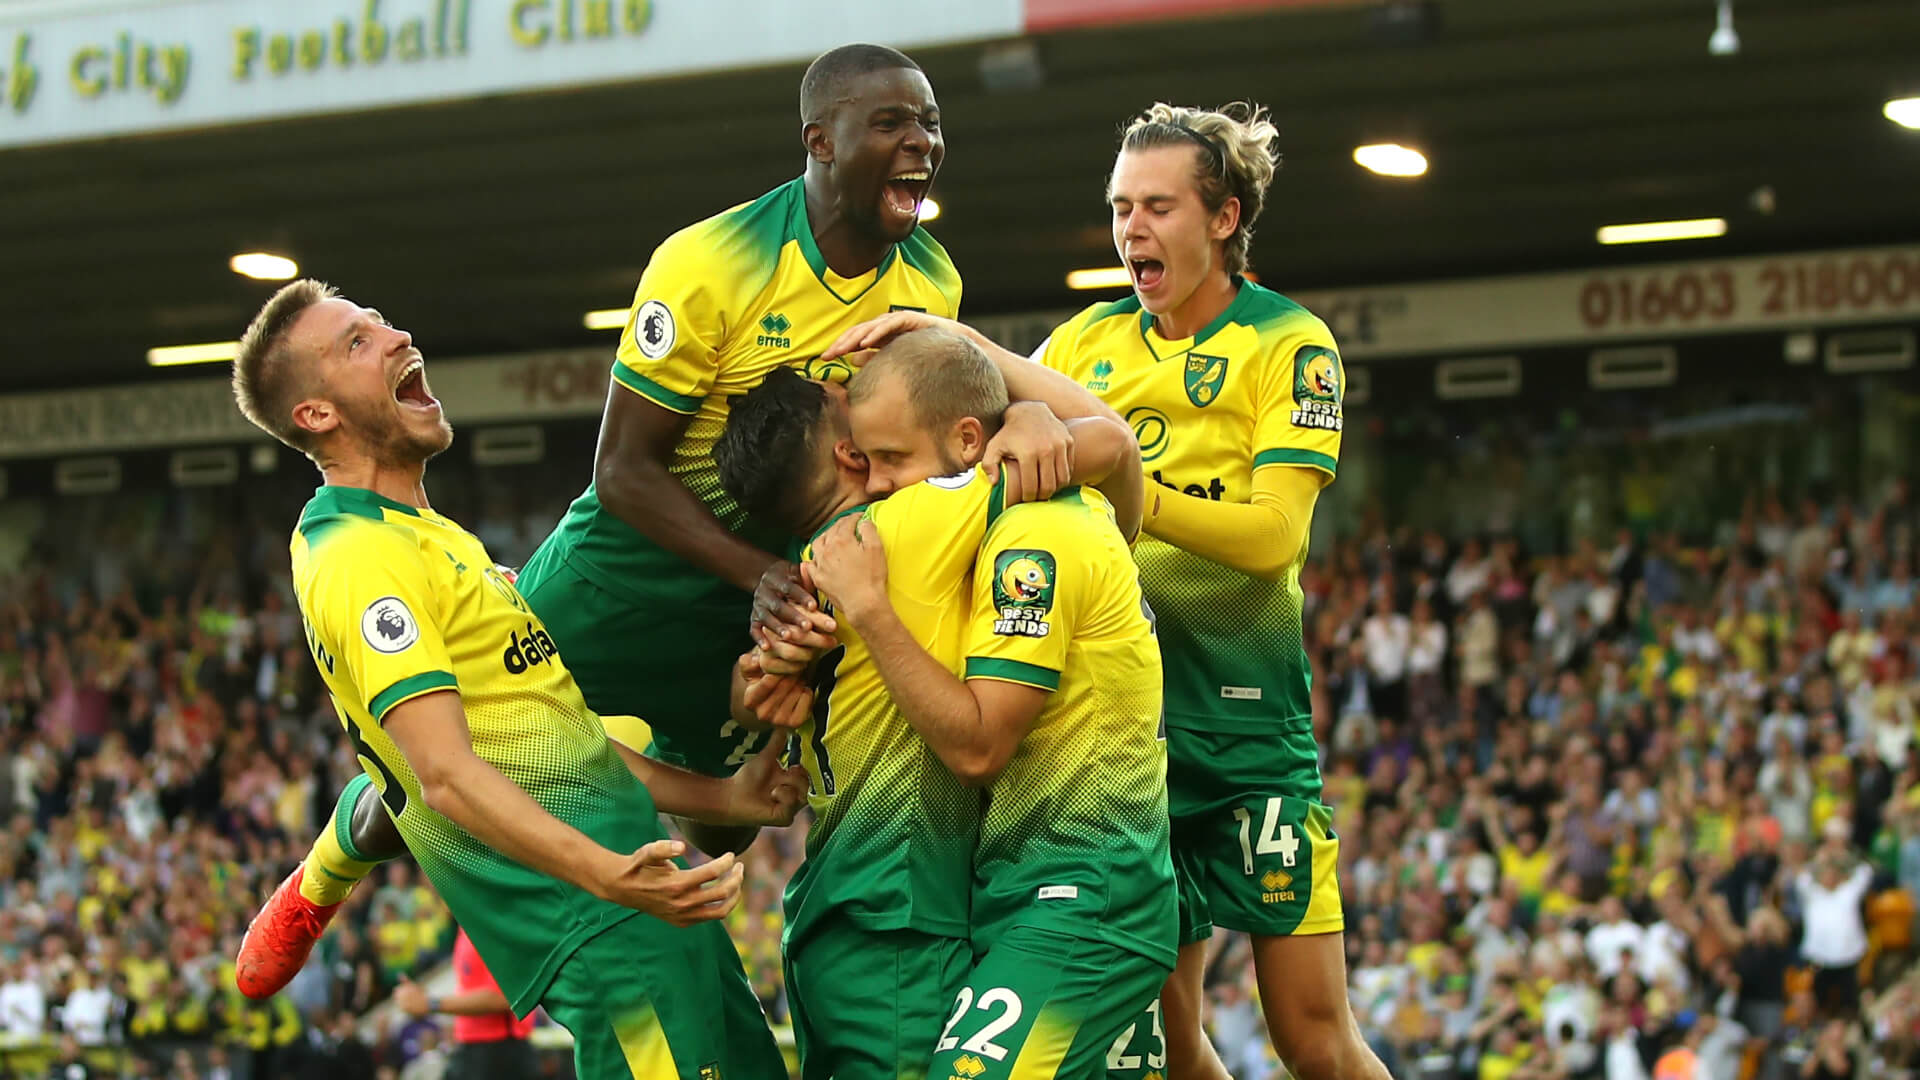 soi-keo-sheffield-united-vs-norwich-city-luc-22h-ngay-7-3-2020-1